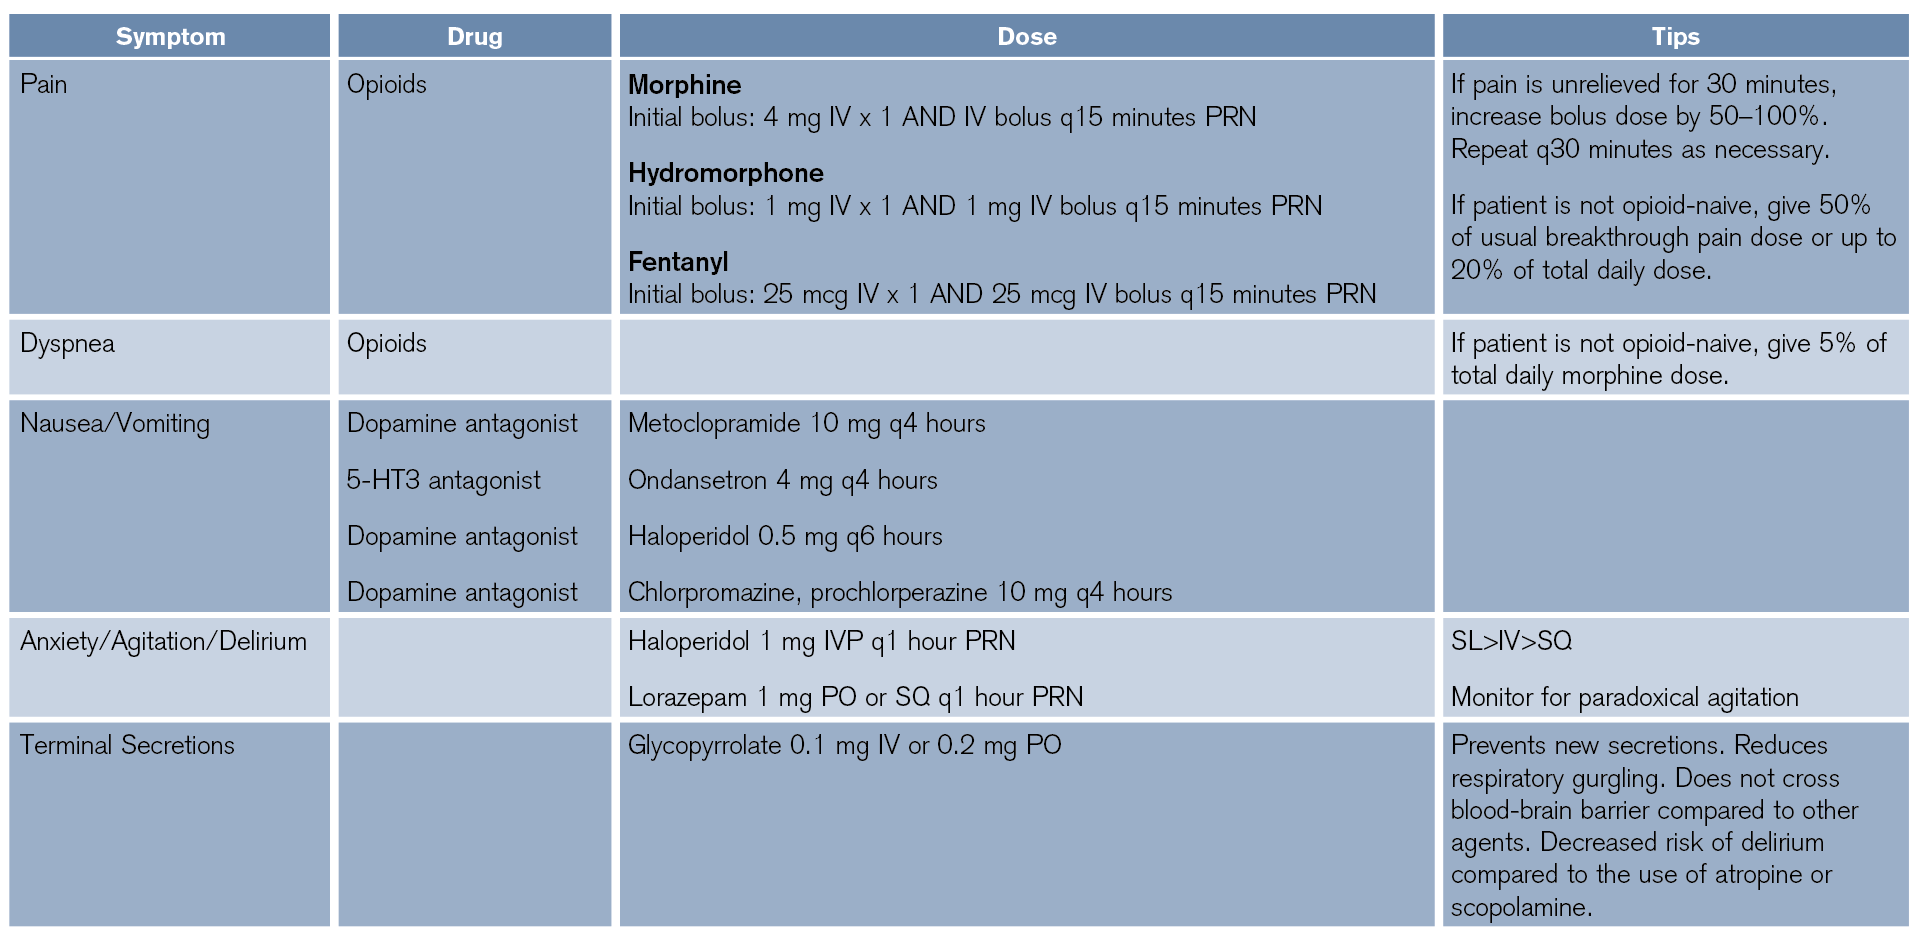 Table 1: Palliative Medical Management of Symptoms in the Acutely Dying Patient